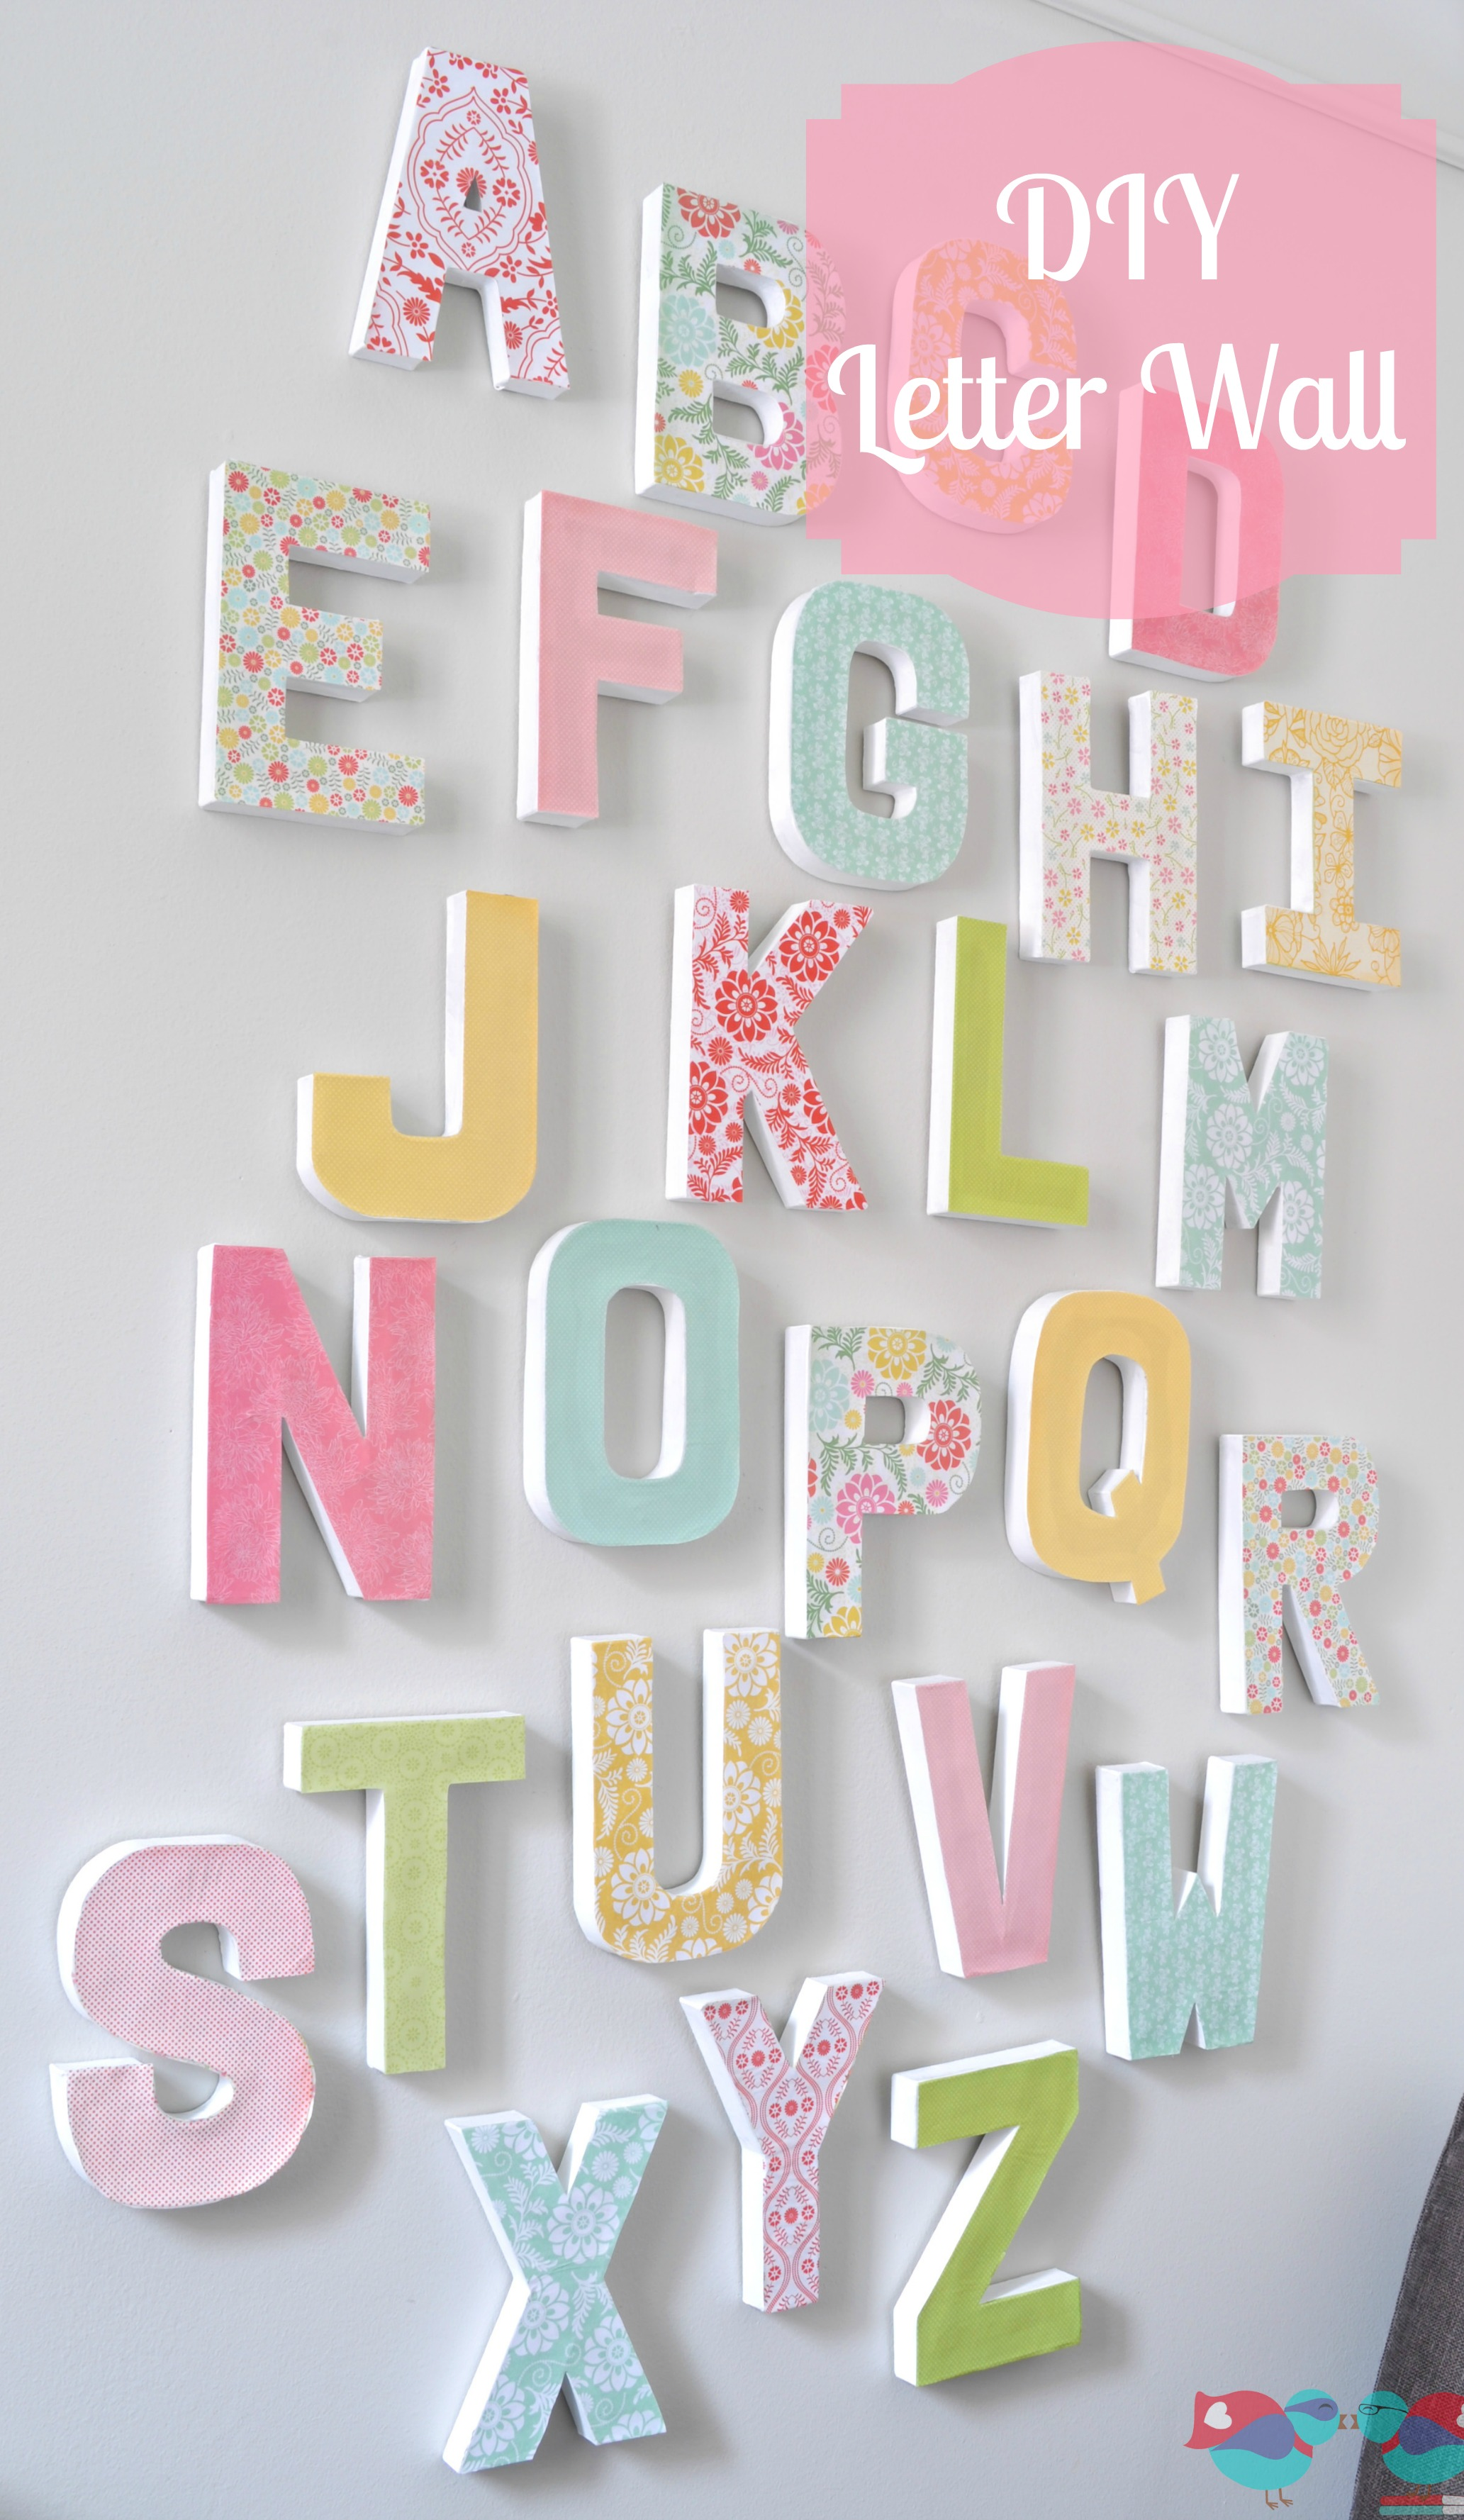 Incredible How To Make Your Own Letter Wall The Love Nerds Largest Home Design Picture Inspirations Pitcheantrous